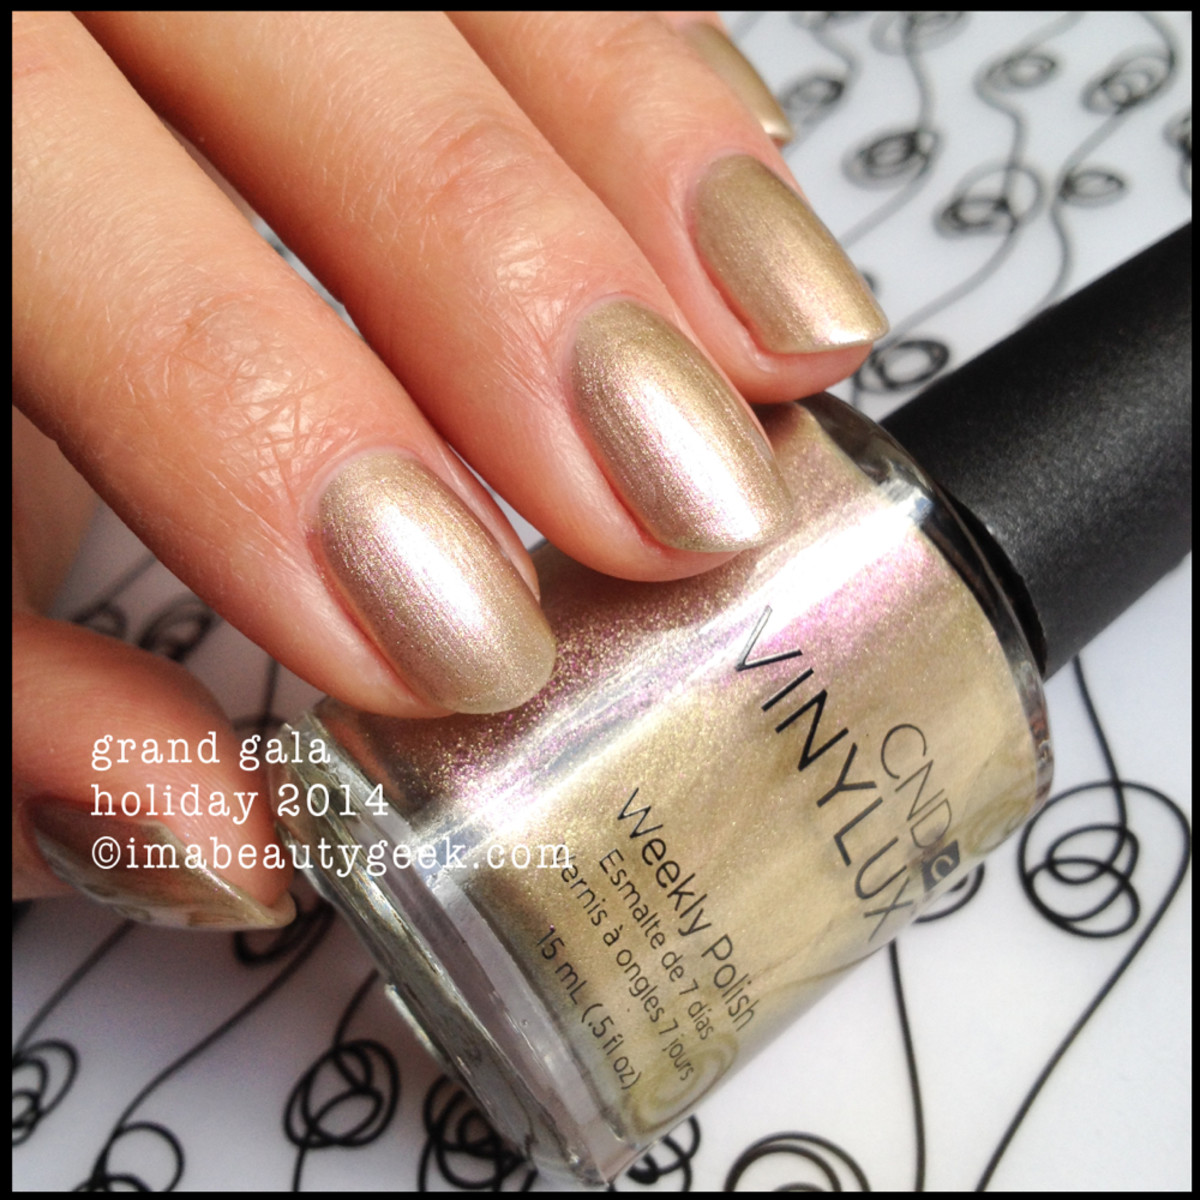 CND Vinylux Grand Gala Holiday 2014